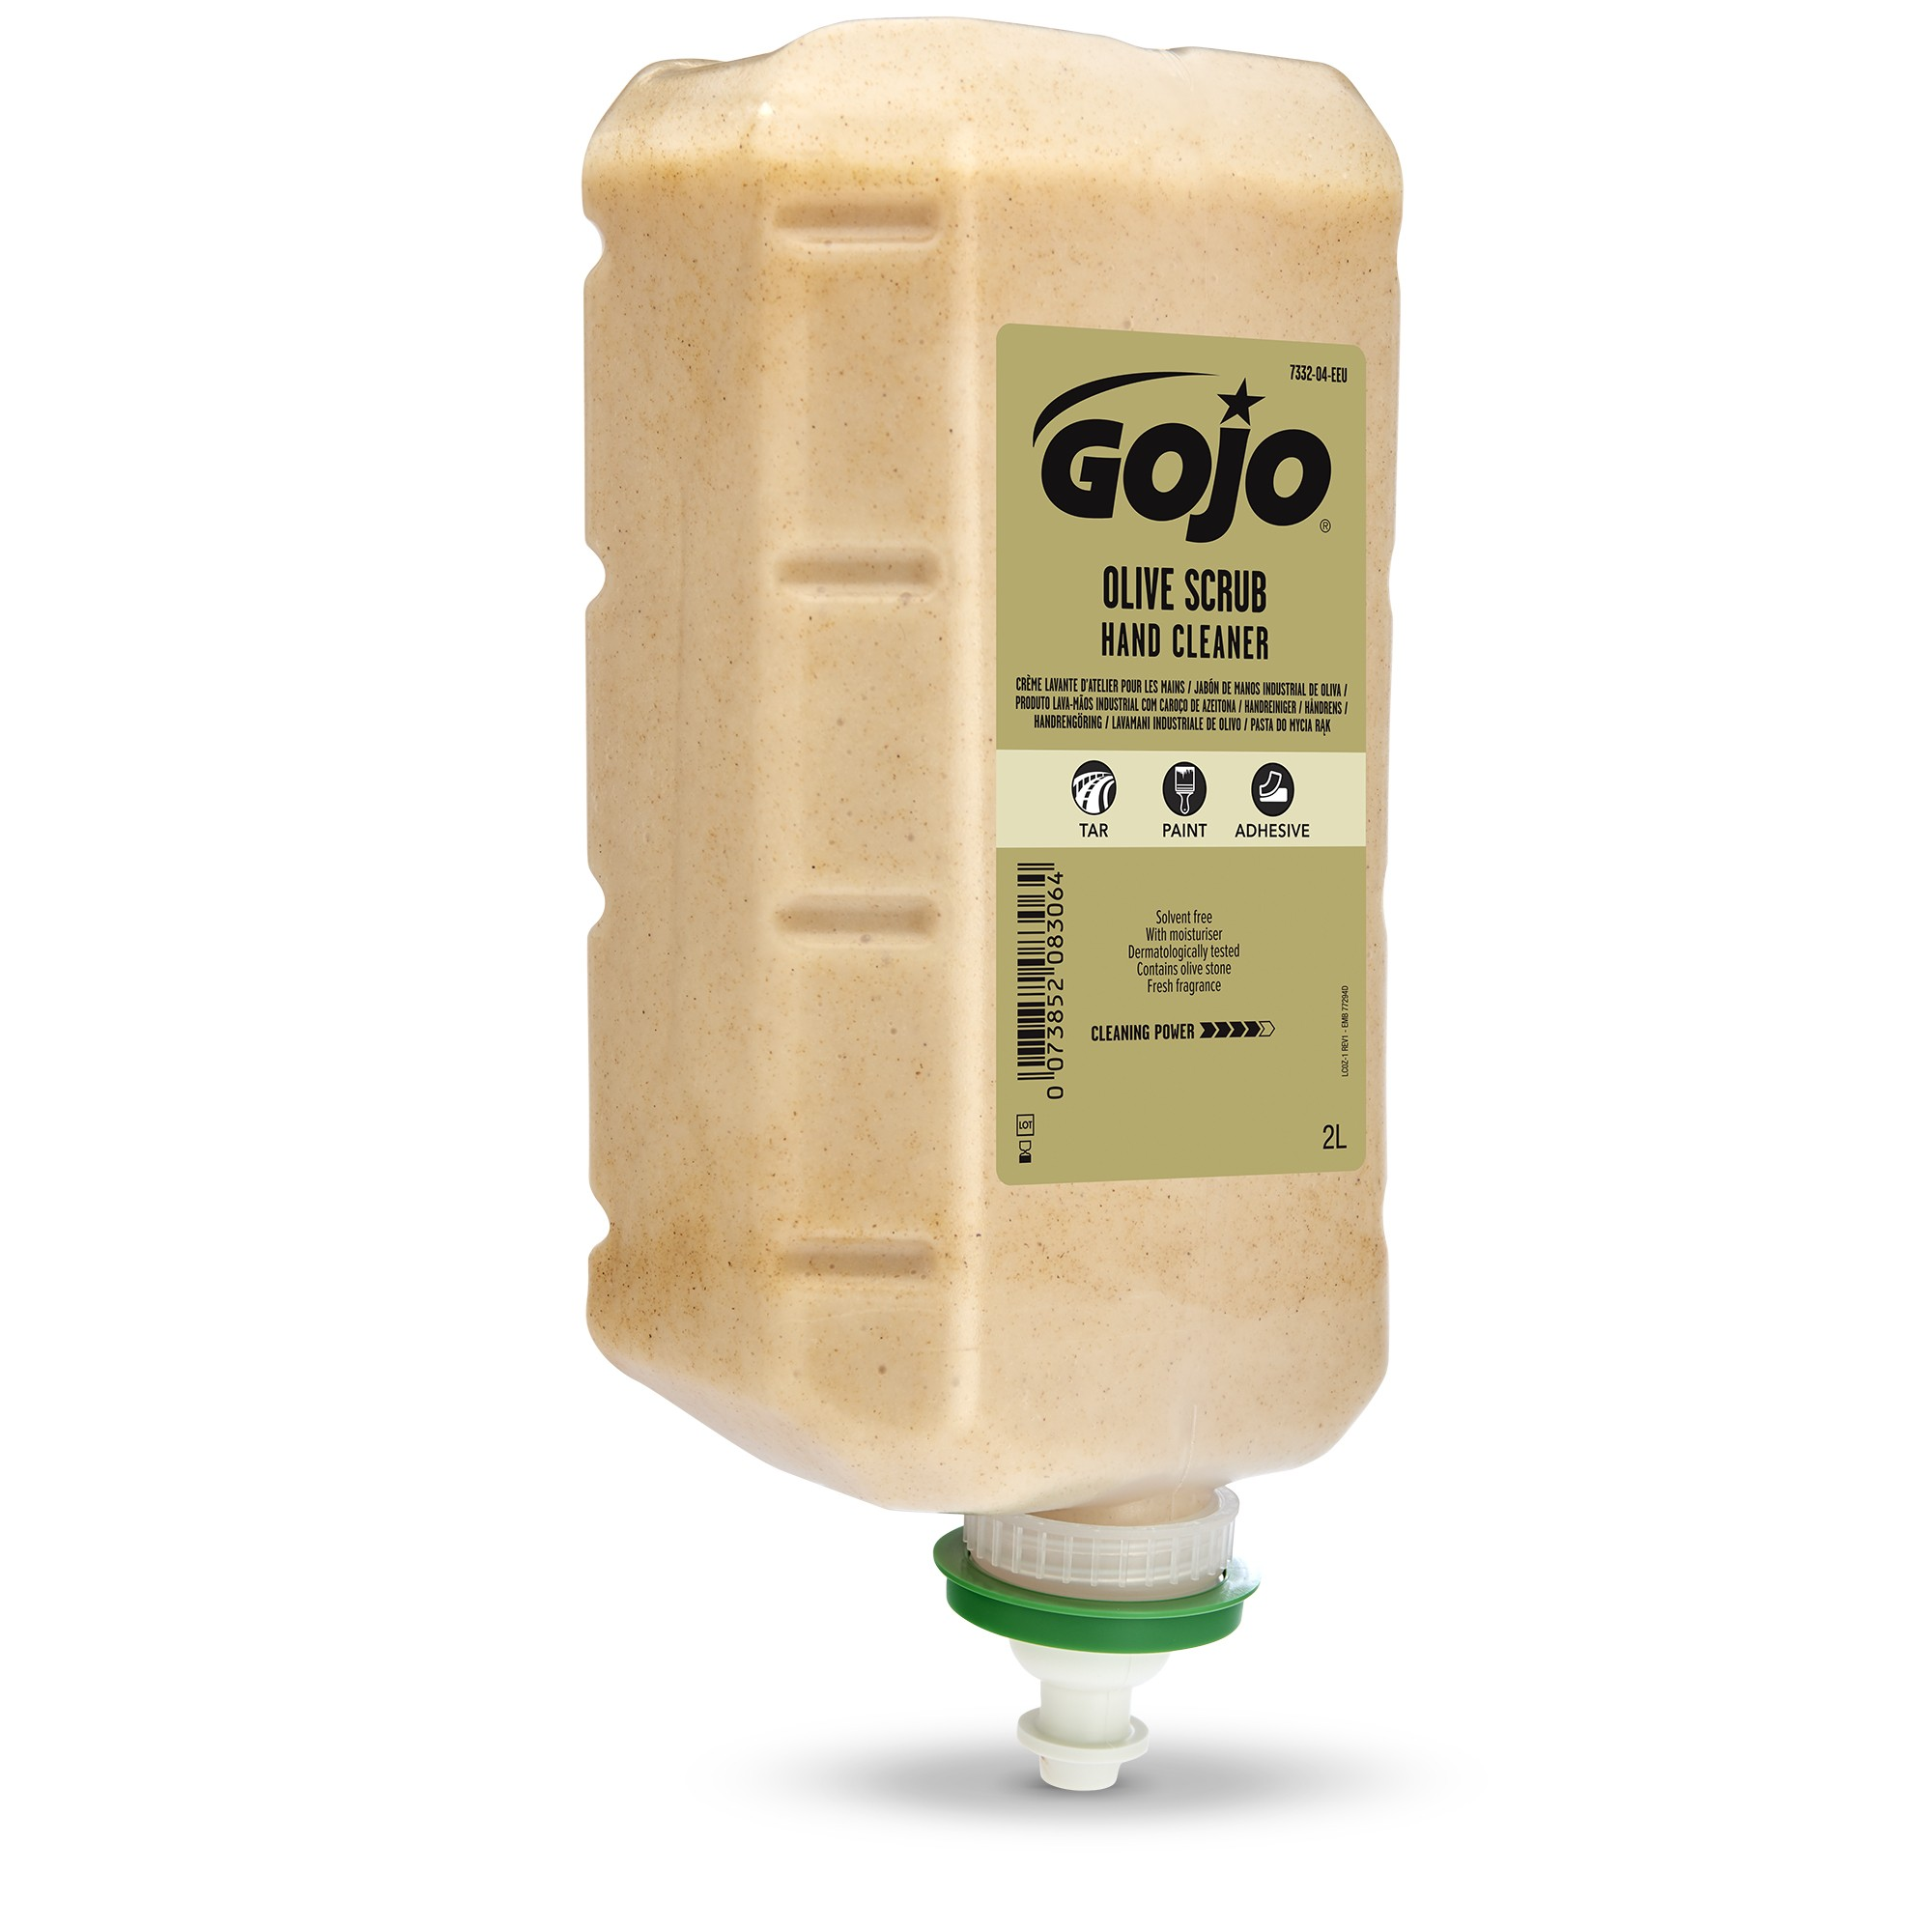 GOJO® Olive Scrub Hand Cleaner Recharge 4 x 2 L